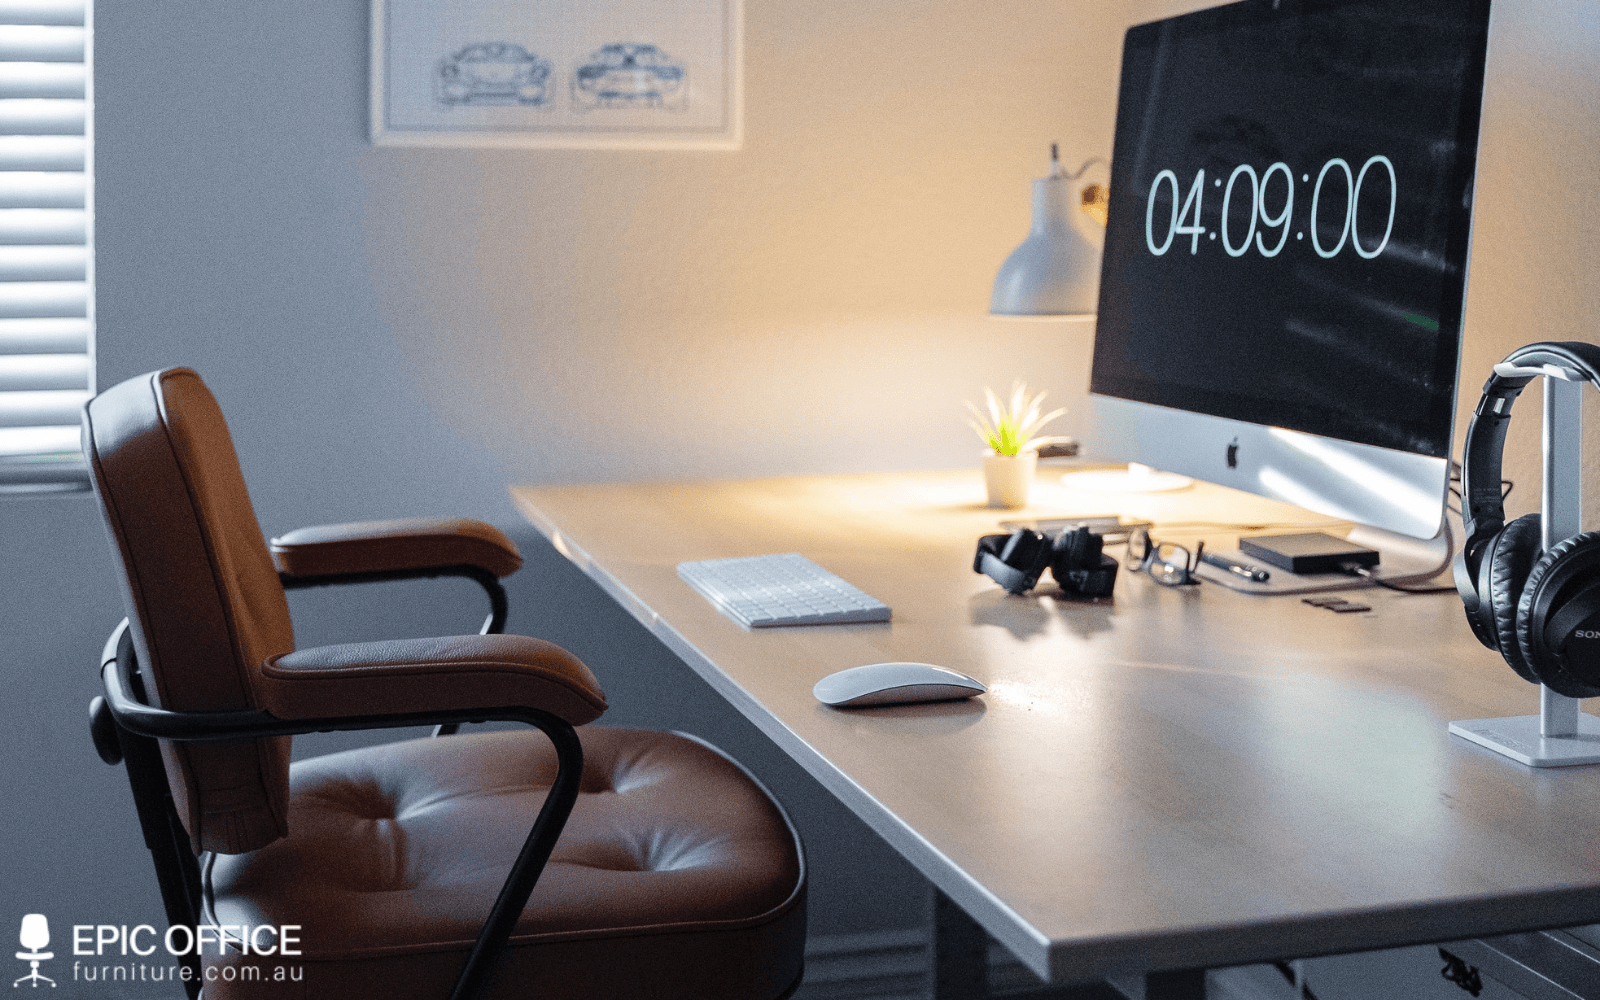 How to Make Your Home Office Look Professional – 6 Simple Tips